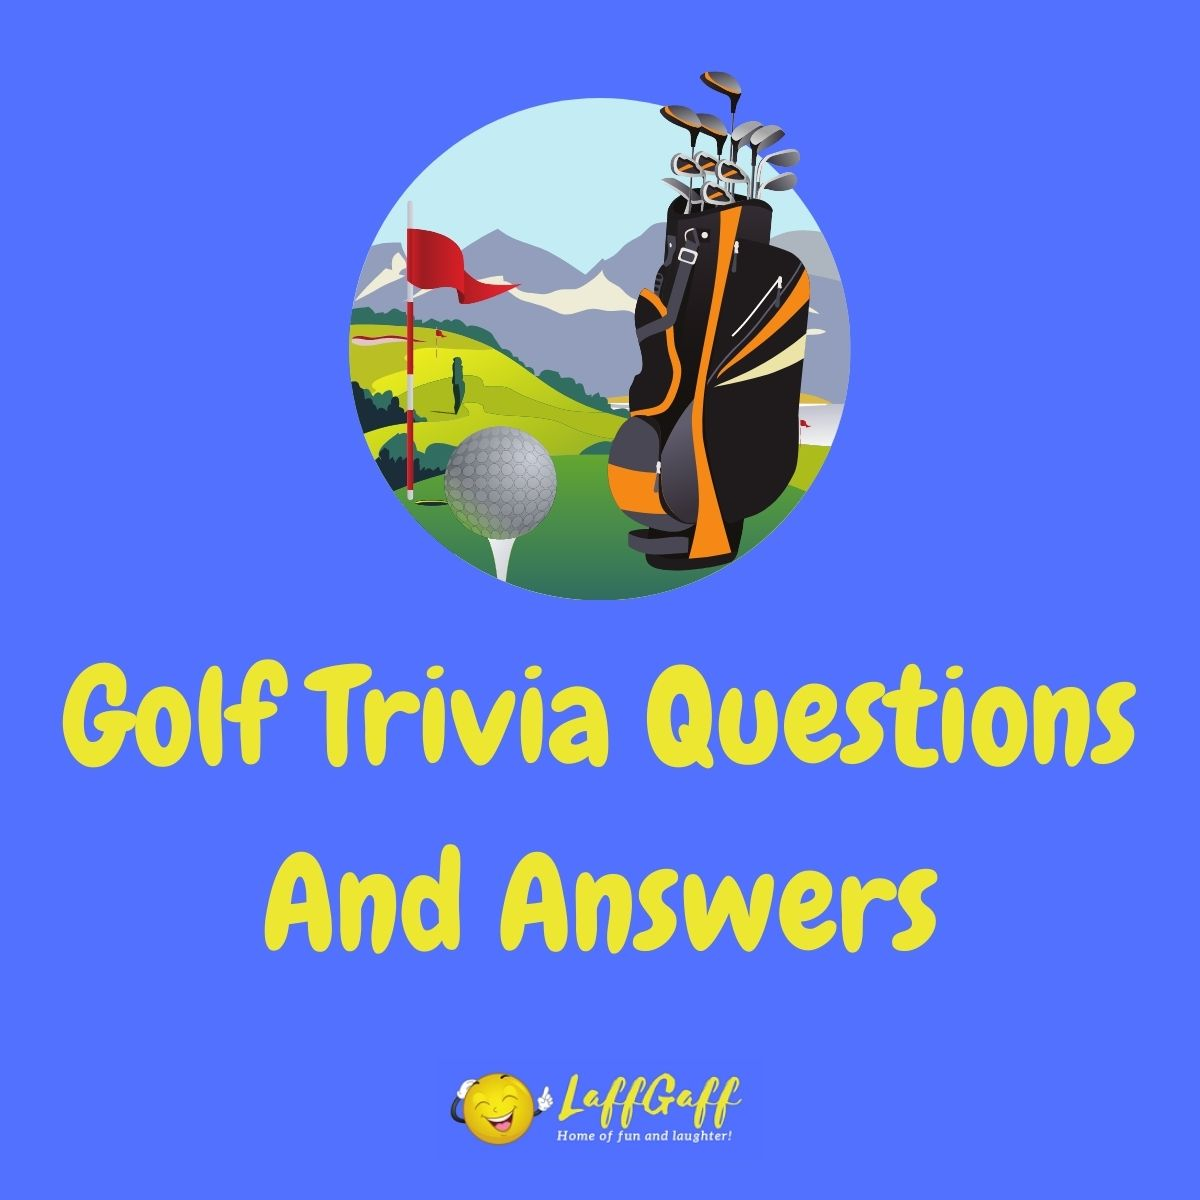 Featured image for a page of golf trivia questions and answers.